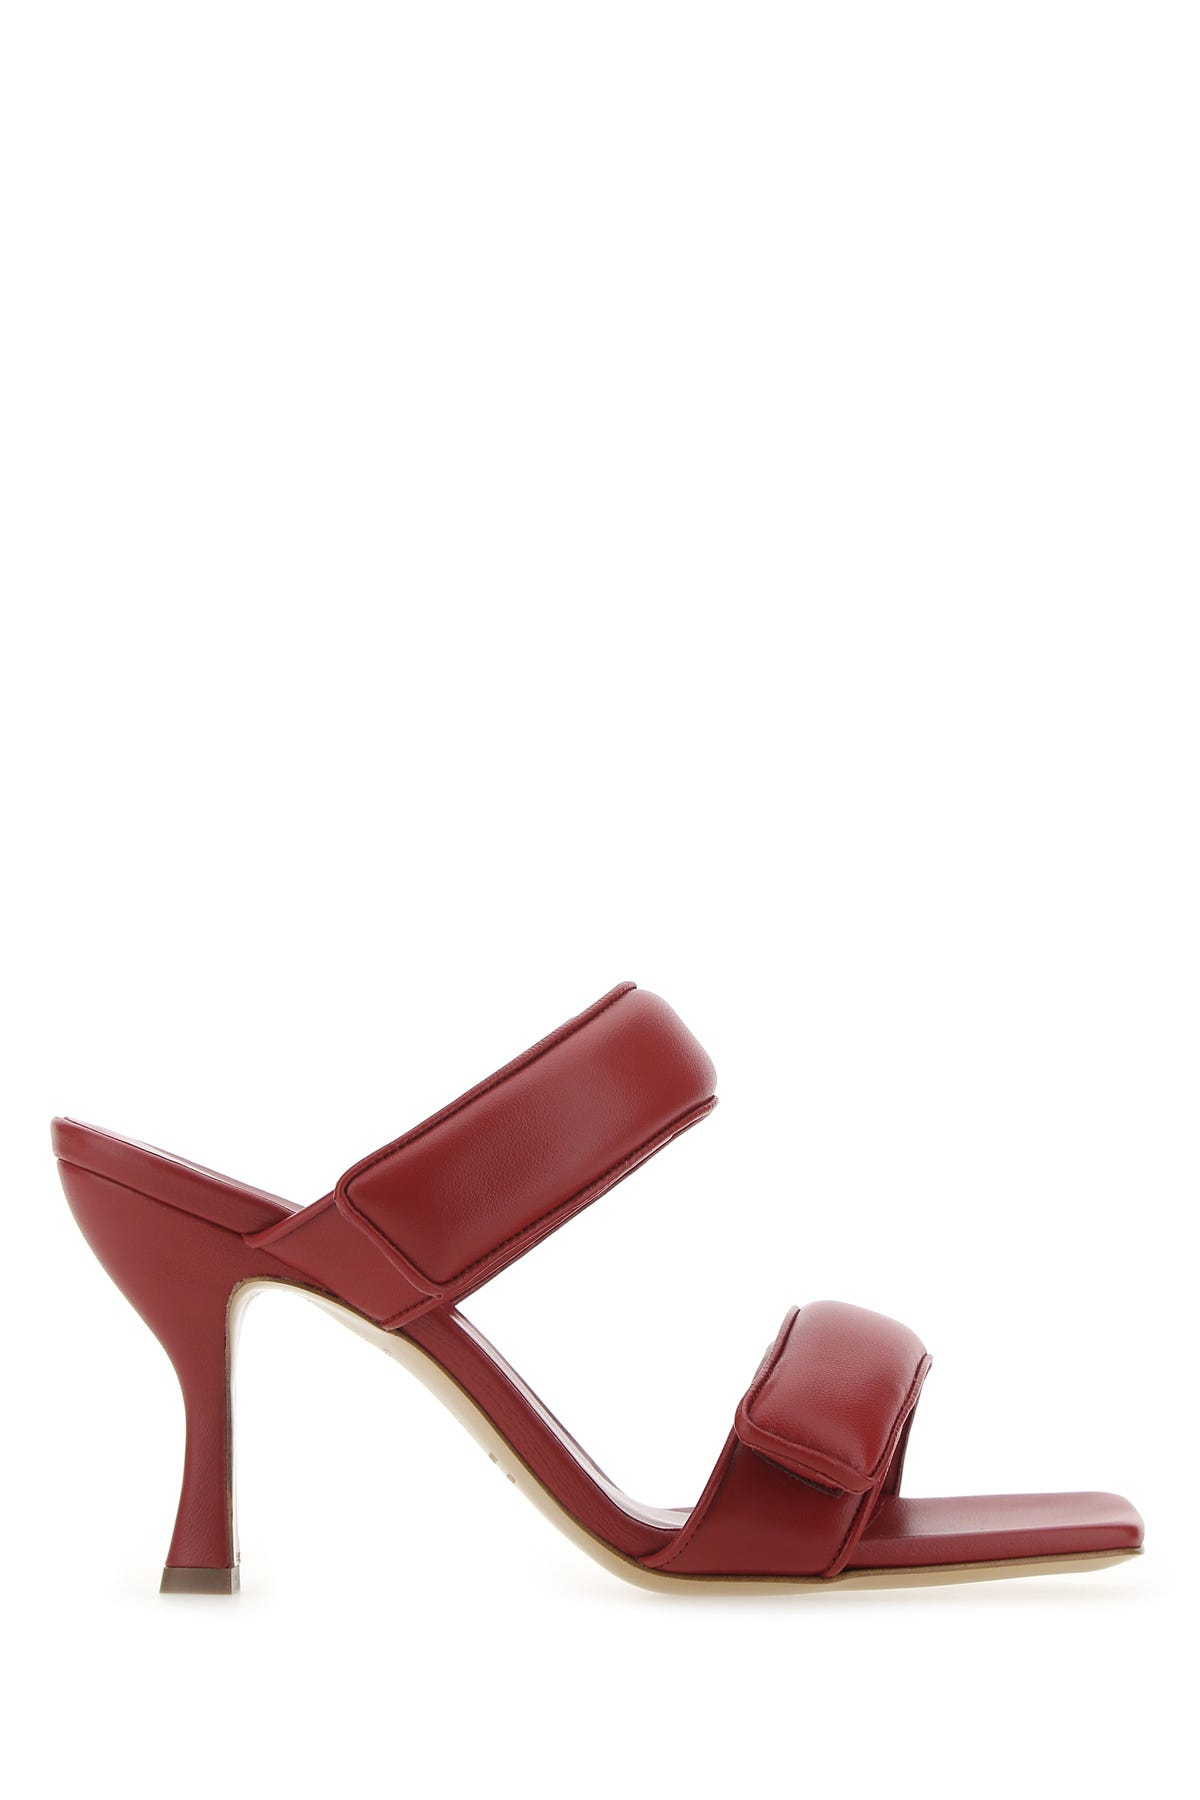 Gia Couture BURGUNDY LEATHER PERNI 03 MULES BURGUNDY GIA COUTURE DONNA 38